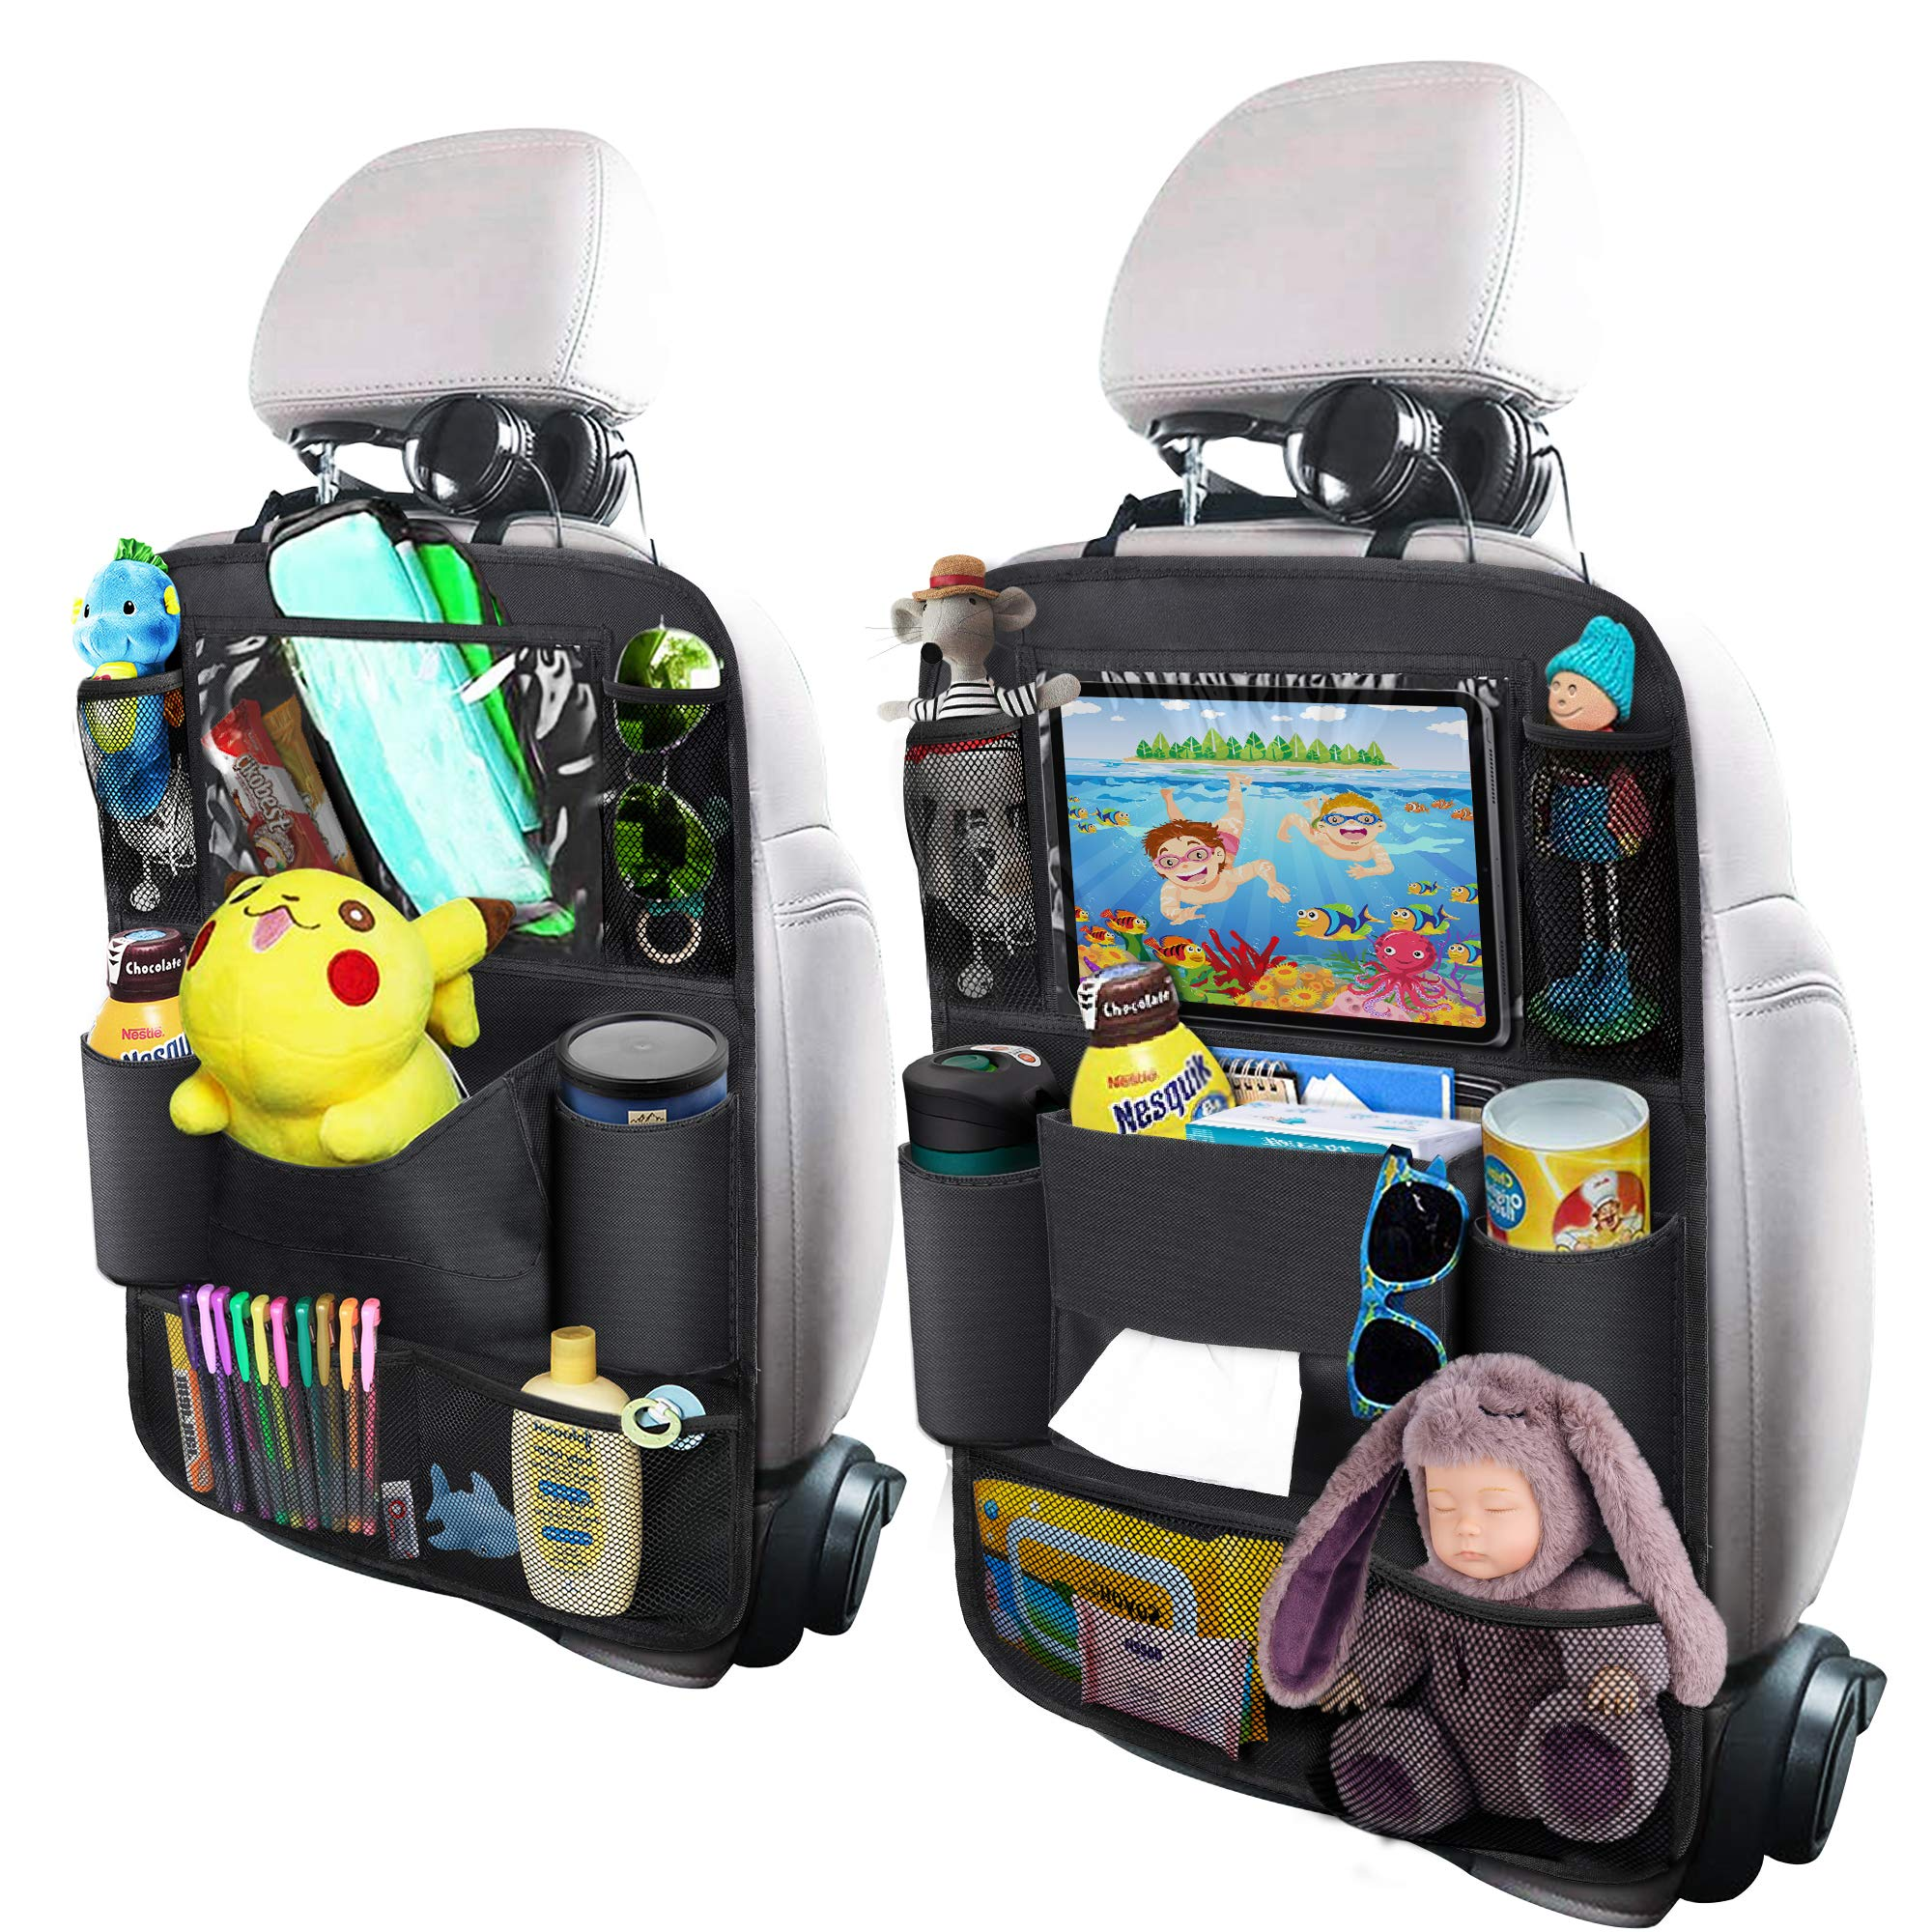 OYRGCIK Backseat Car Organizer, Kick Mats Car Back Seat Protector with Touch Screen Tablet Holder Tissue Box 8 Storage Pockets for Toys Book Bottle Drinks Kids Baby Toddler Travel Accessories, 2 Pack by OYRGCIK